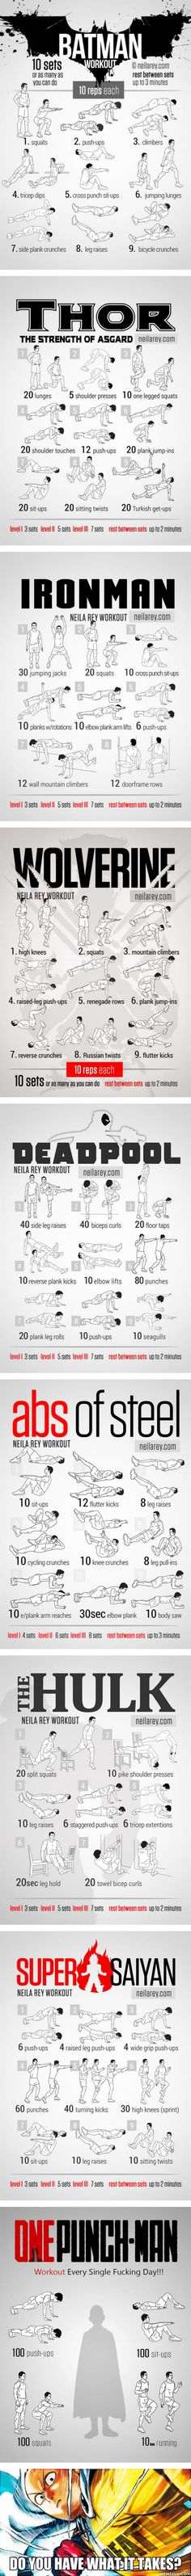 The Ultimate Superhero Workout Challenge, Do You Dare To Take It? Choose Wisely.